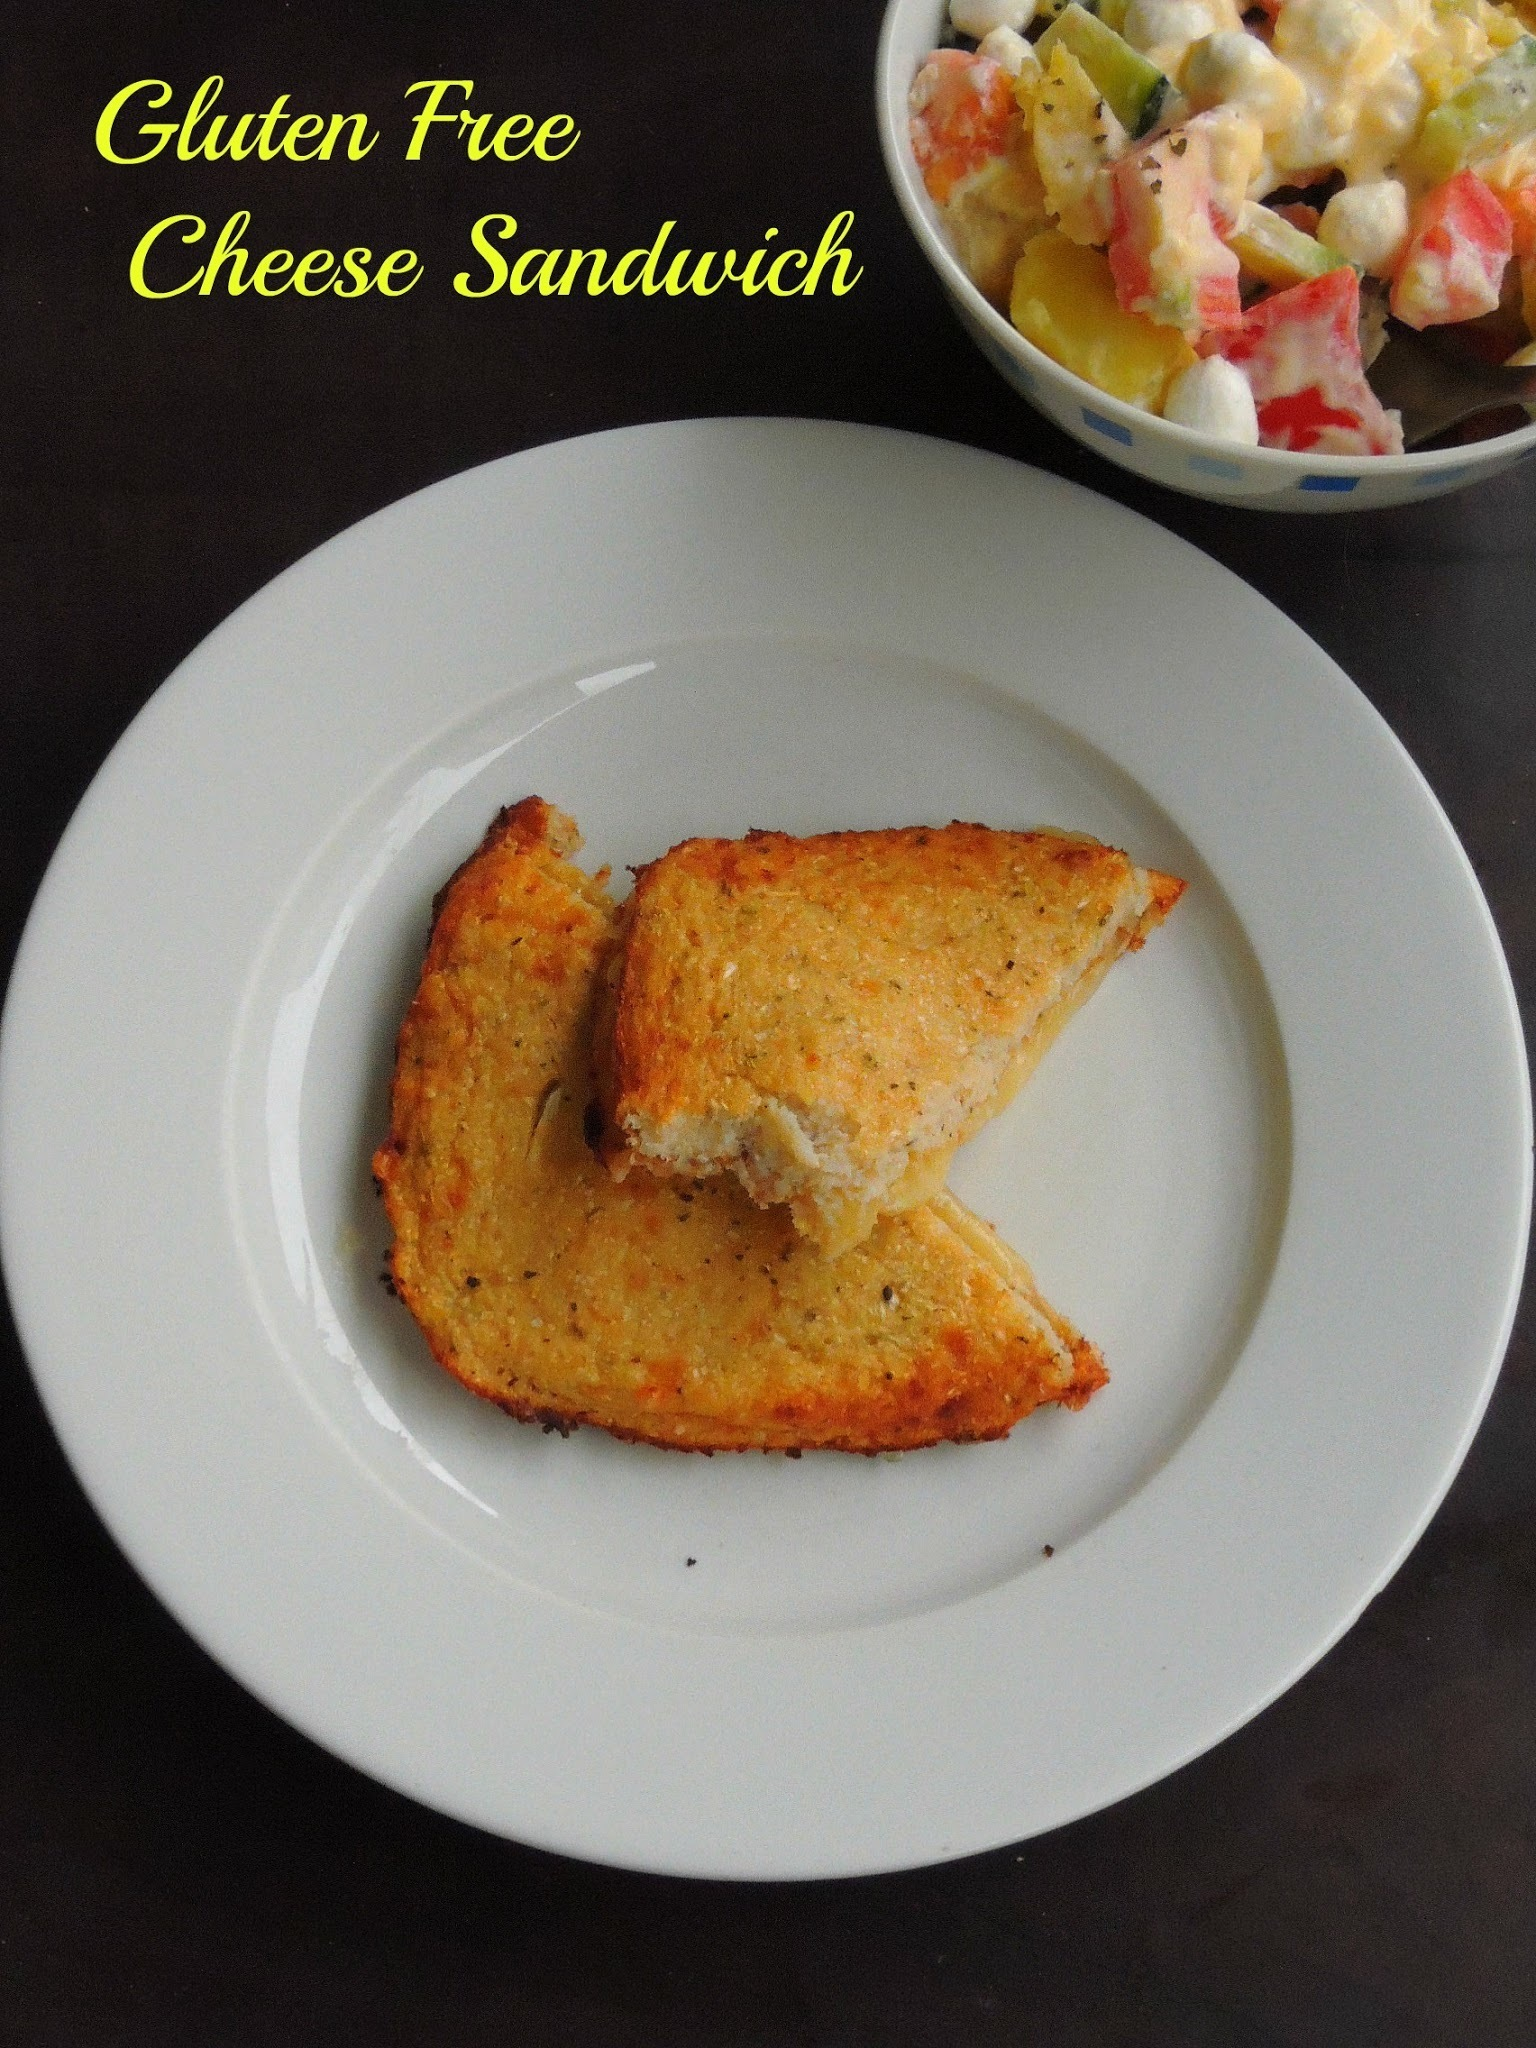 Low Carb Cauliflower Crusted Cheese Sandwich/Gluten Free Cheese Sandwich